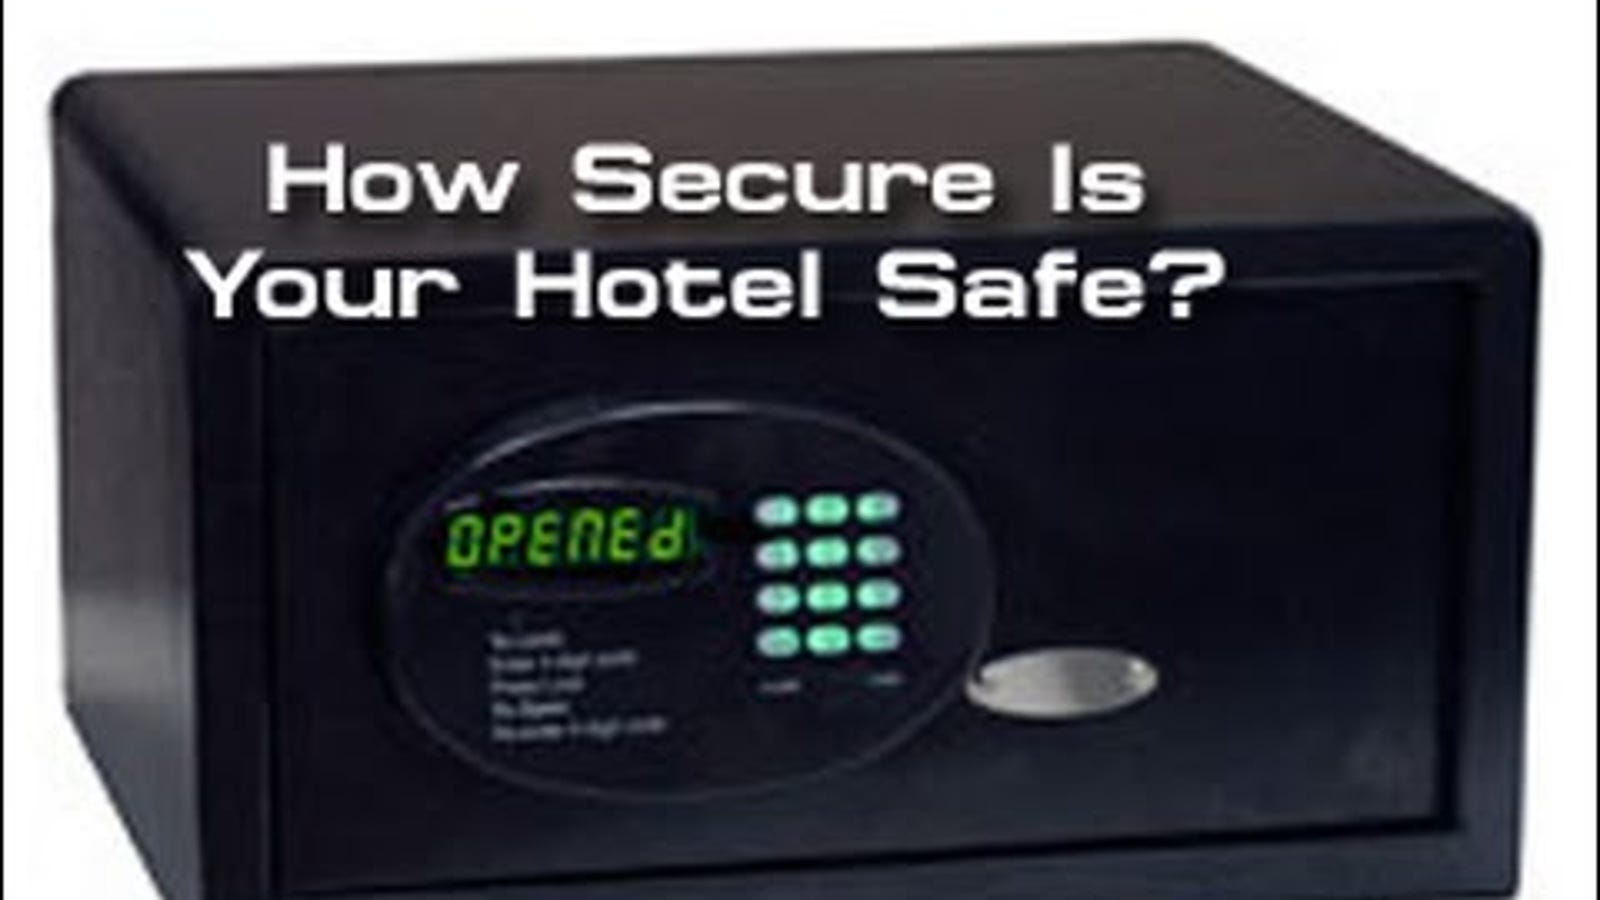 Watch This Guy Open a Hotel Room Safe With a Pocketknife and